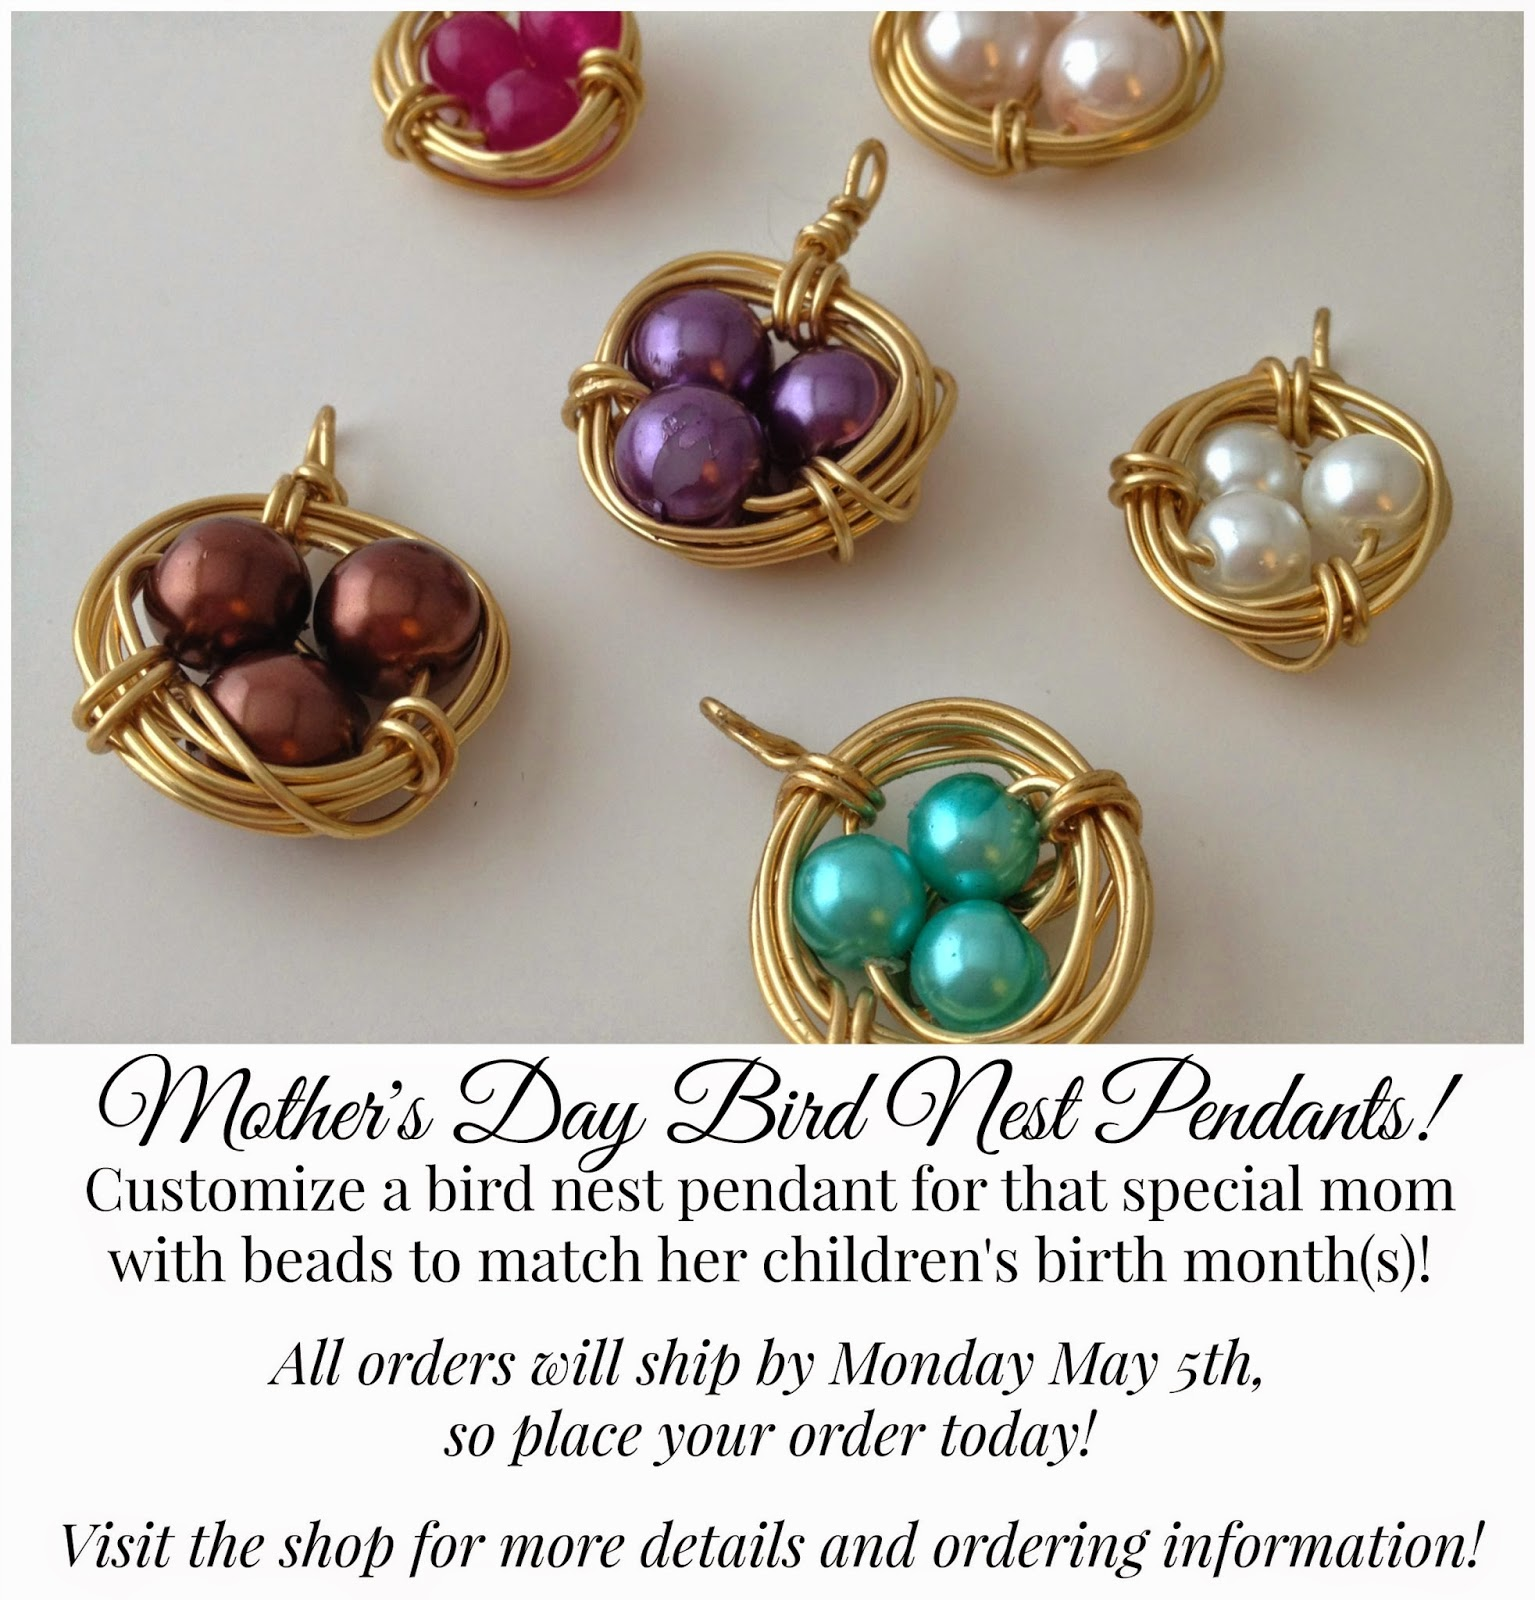 https://www.etsy.com/listing/187241917/mothers-day-bird-nest-necklace?ref=shop_home_feat_3